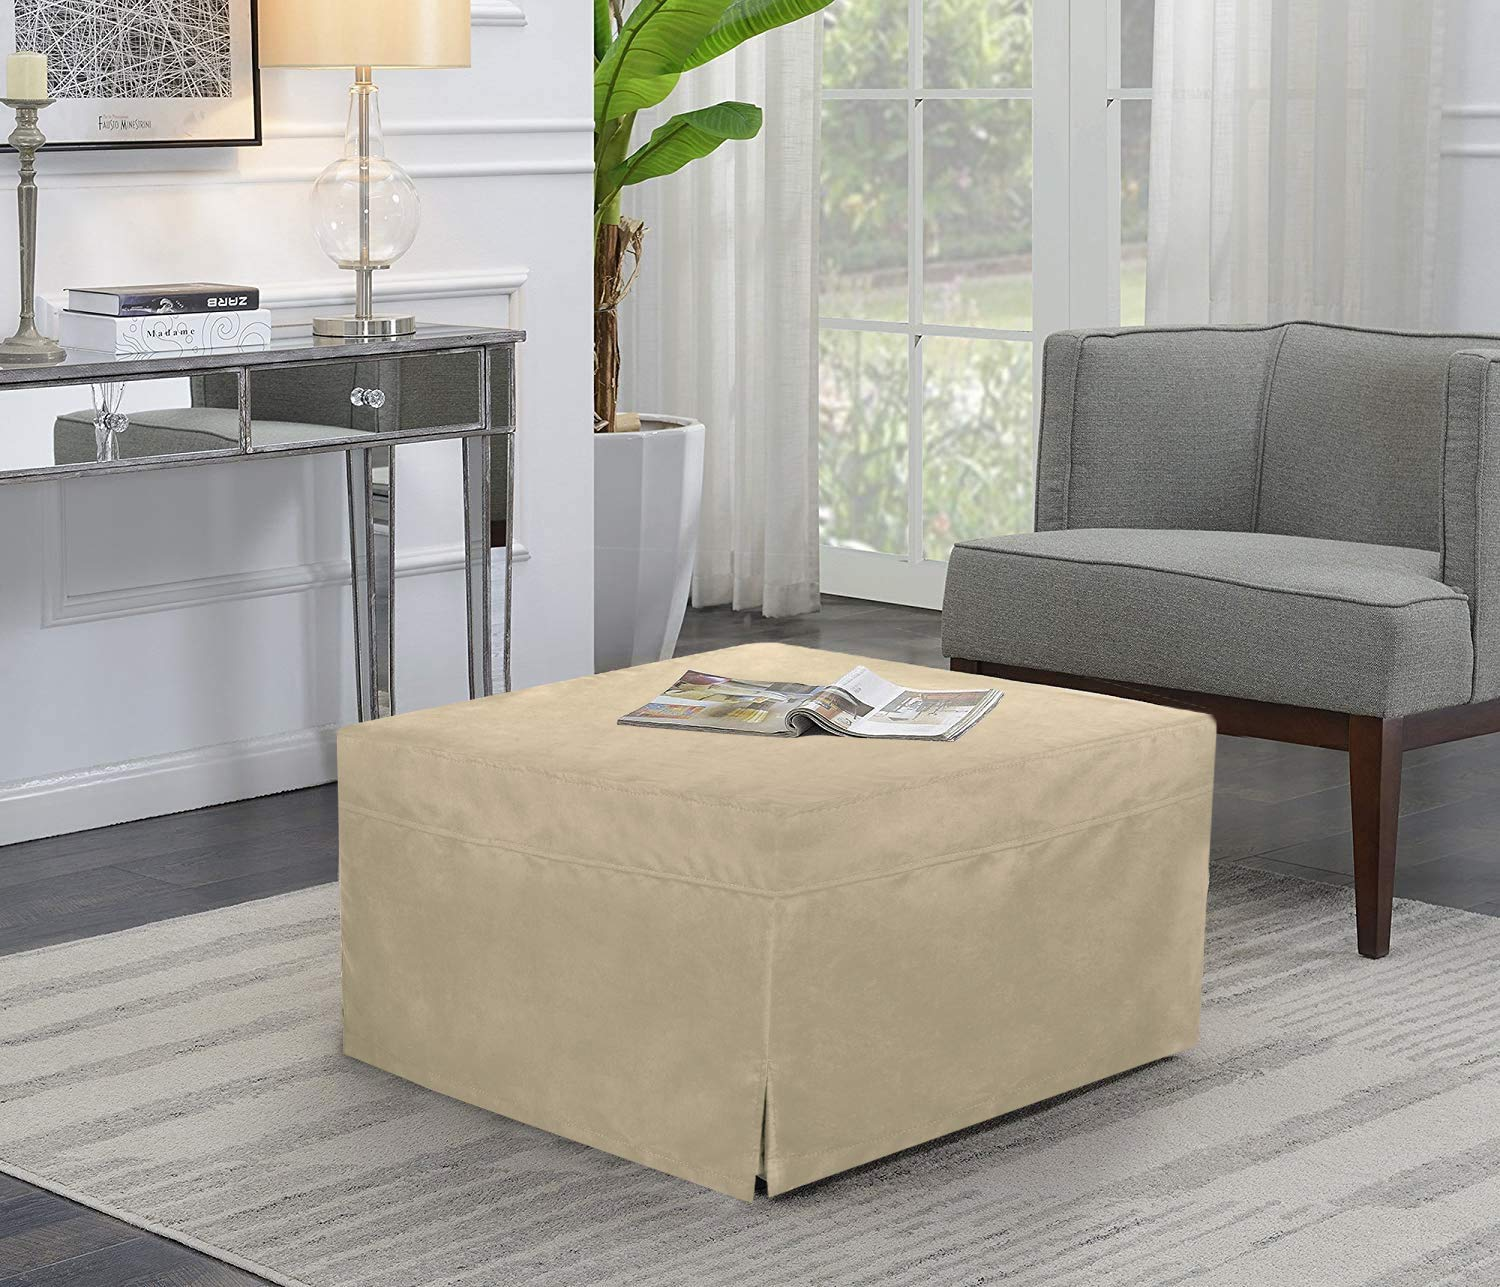 SPACE INNOVATIONS Ottoman Sleeper Guest Bed, (2nd Generation) Safe, Comfortable and Durable Updates, Fold-Out Bed Twin, Beige